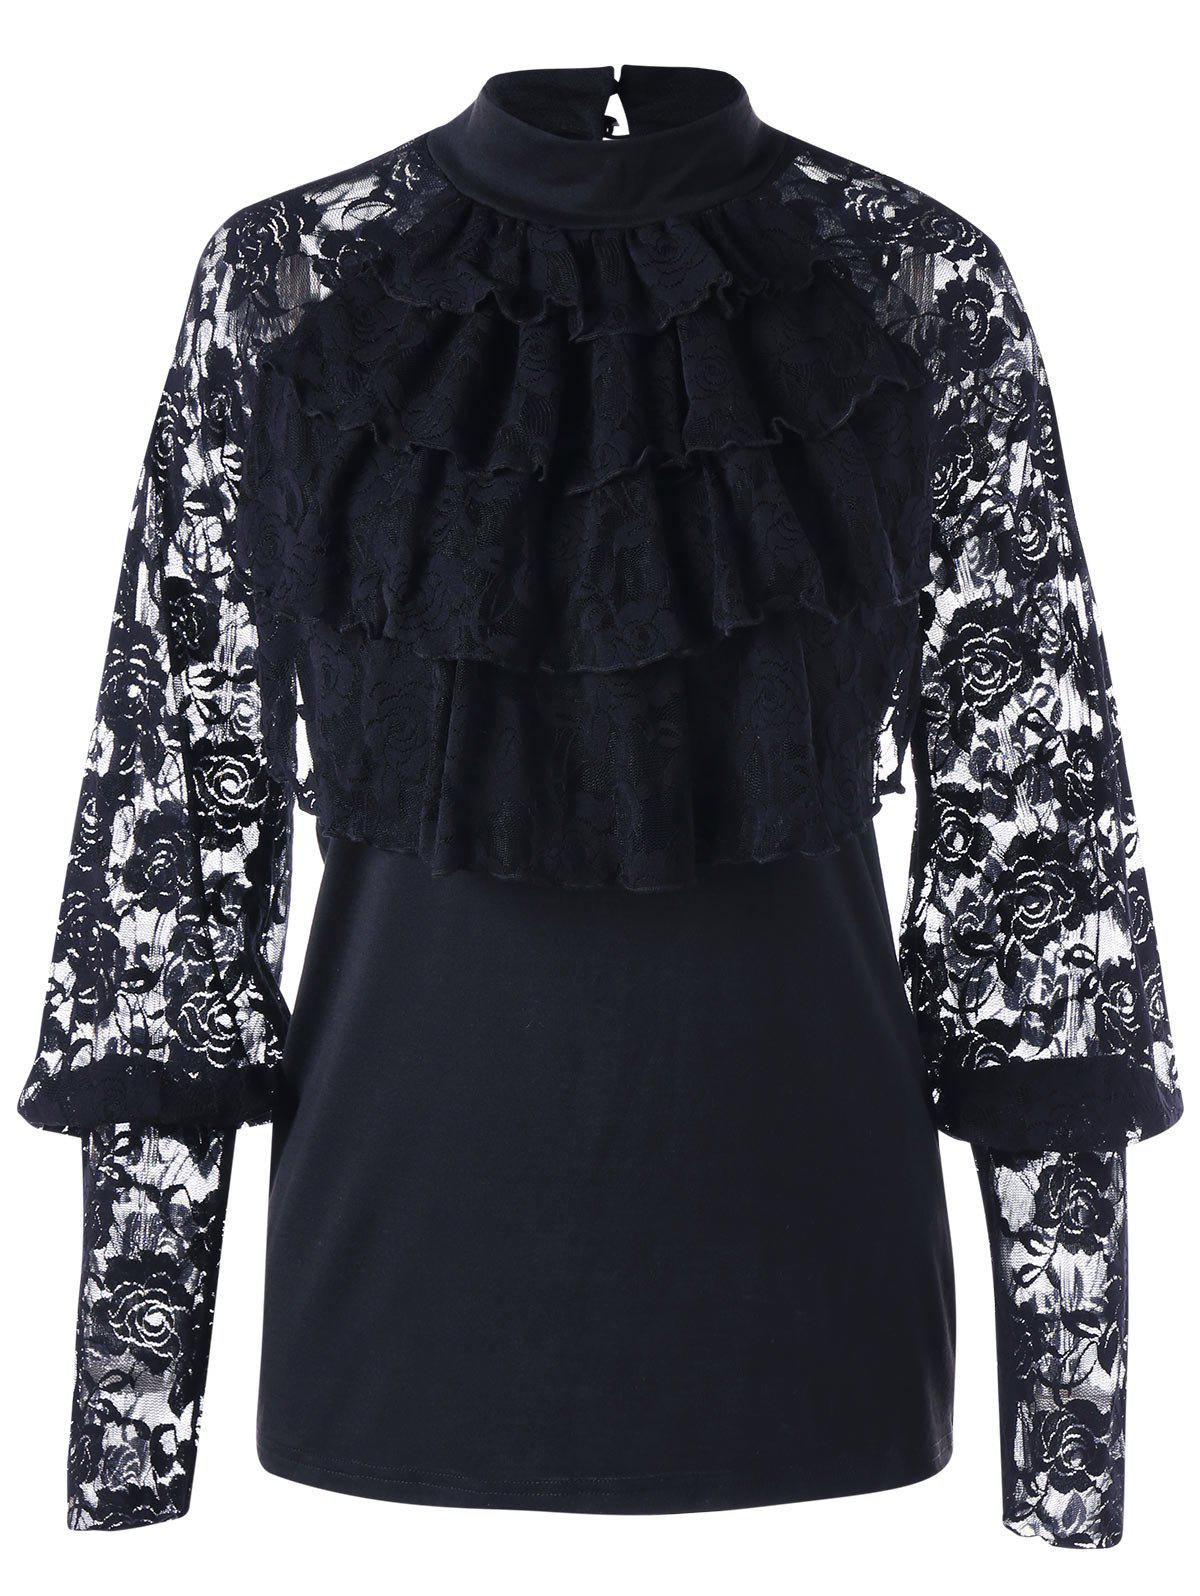 Halloween Lace Trim Layered Ruffle TopWOMEN<br><br>Size: L; Color: BLACK; Material: Polyester,Spandex; Shirt Length: Regular; Sleeve Length: Full; Collar: Mock Neck; Style: Fashion; Embellishment: Lace; Pattern Type: Floral; Season: Fall,Spring; Weight: 0.2700kg; Package Contents: 1 x Top;